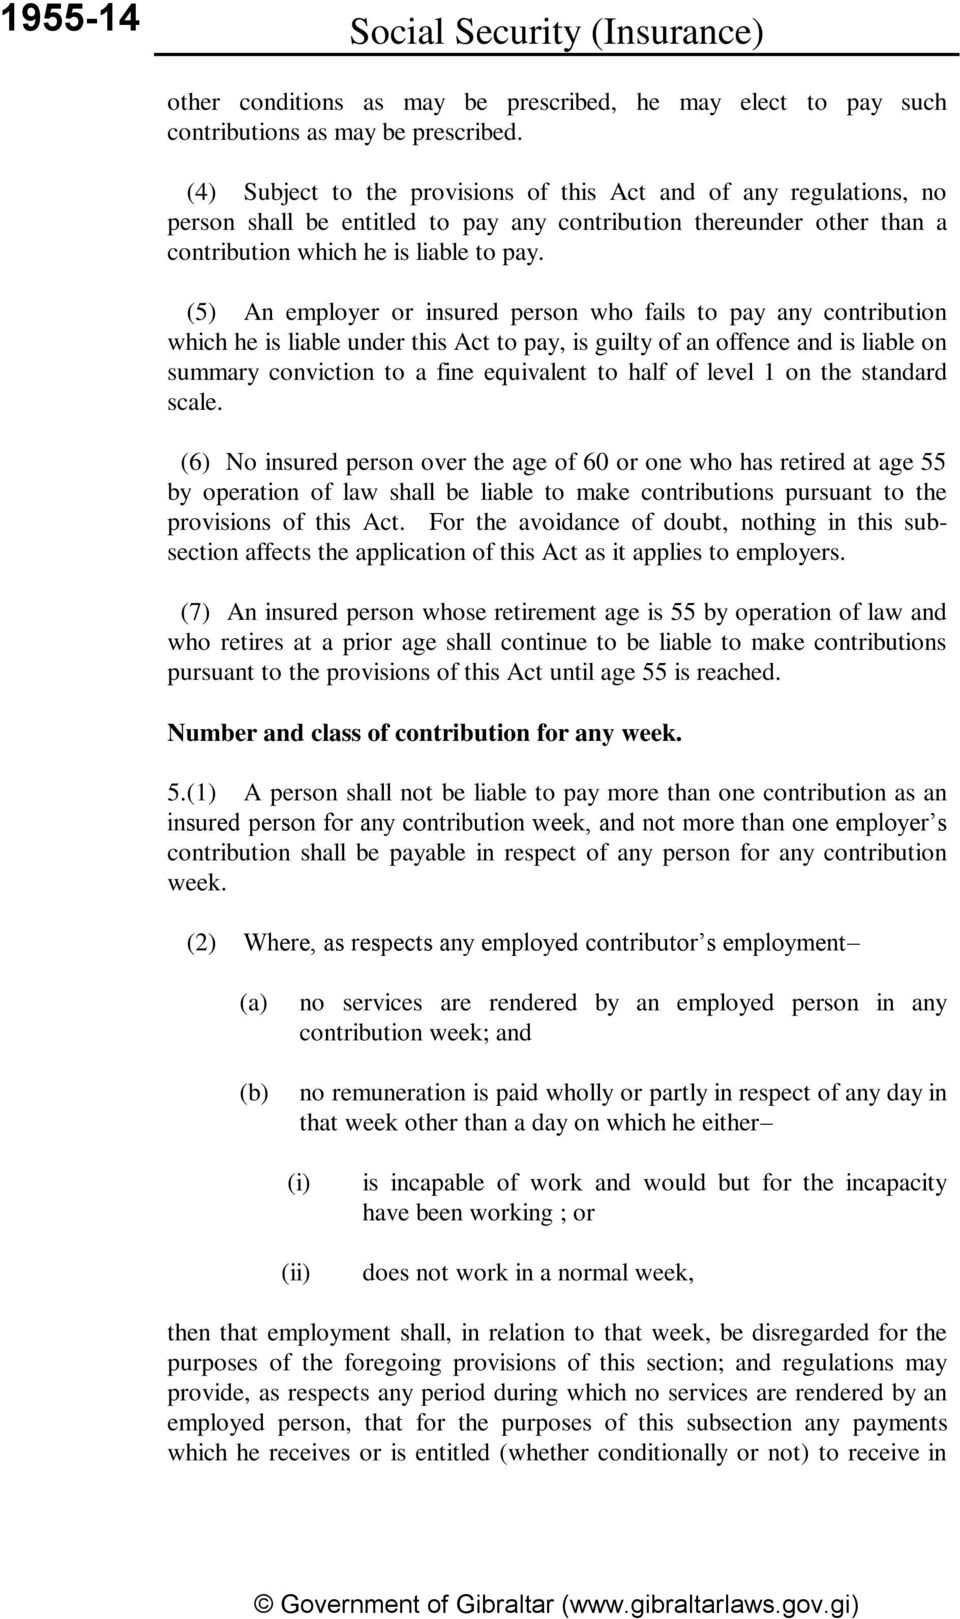 (5) An employer or insured person who fails to pay any contribution which he is liable under this Act to pay, is guilty of an offence and is liable on summary conviction to a fine equivalent to half